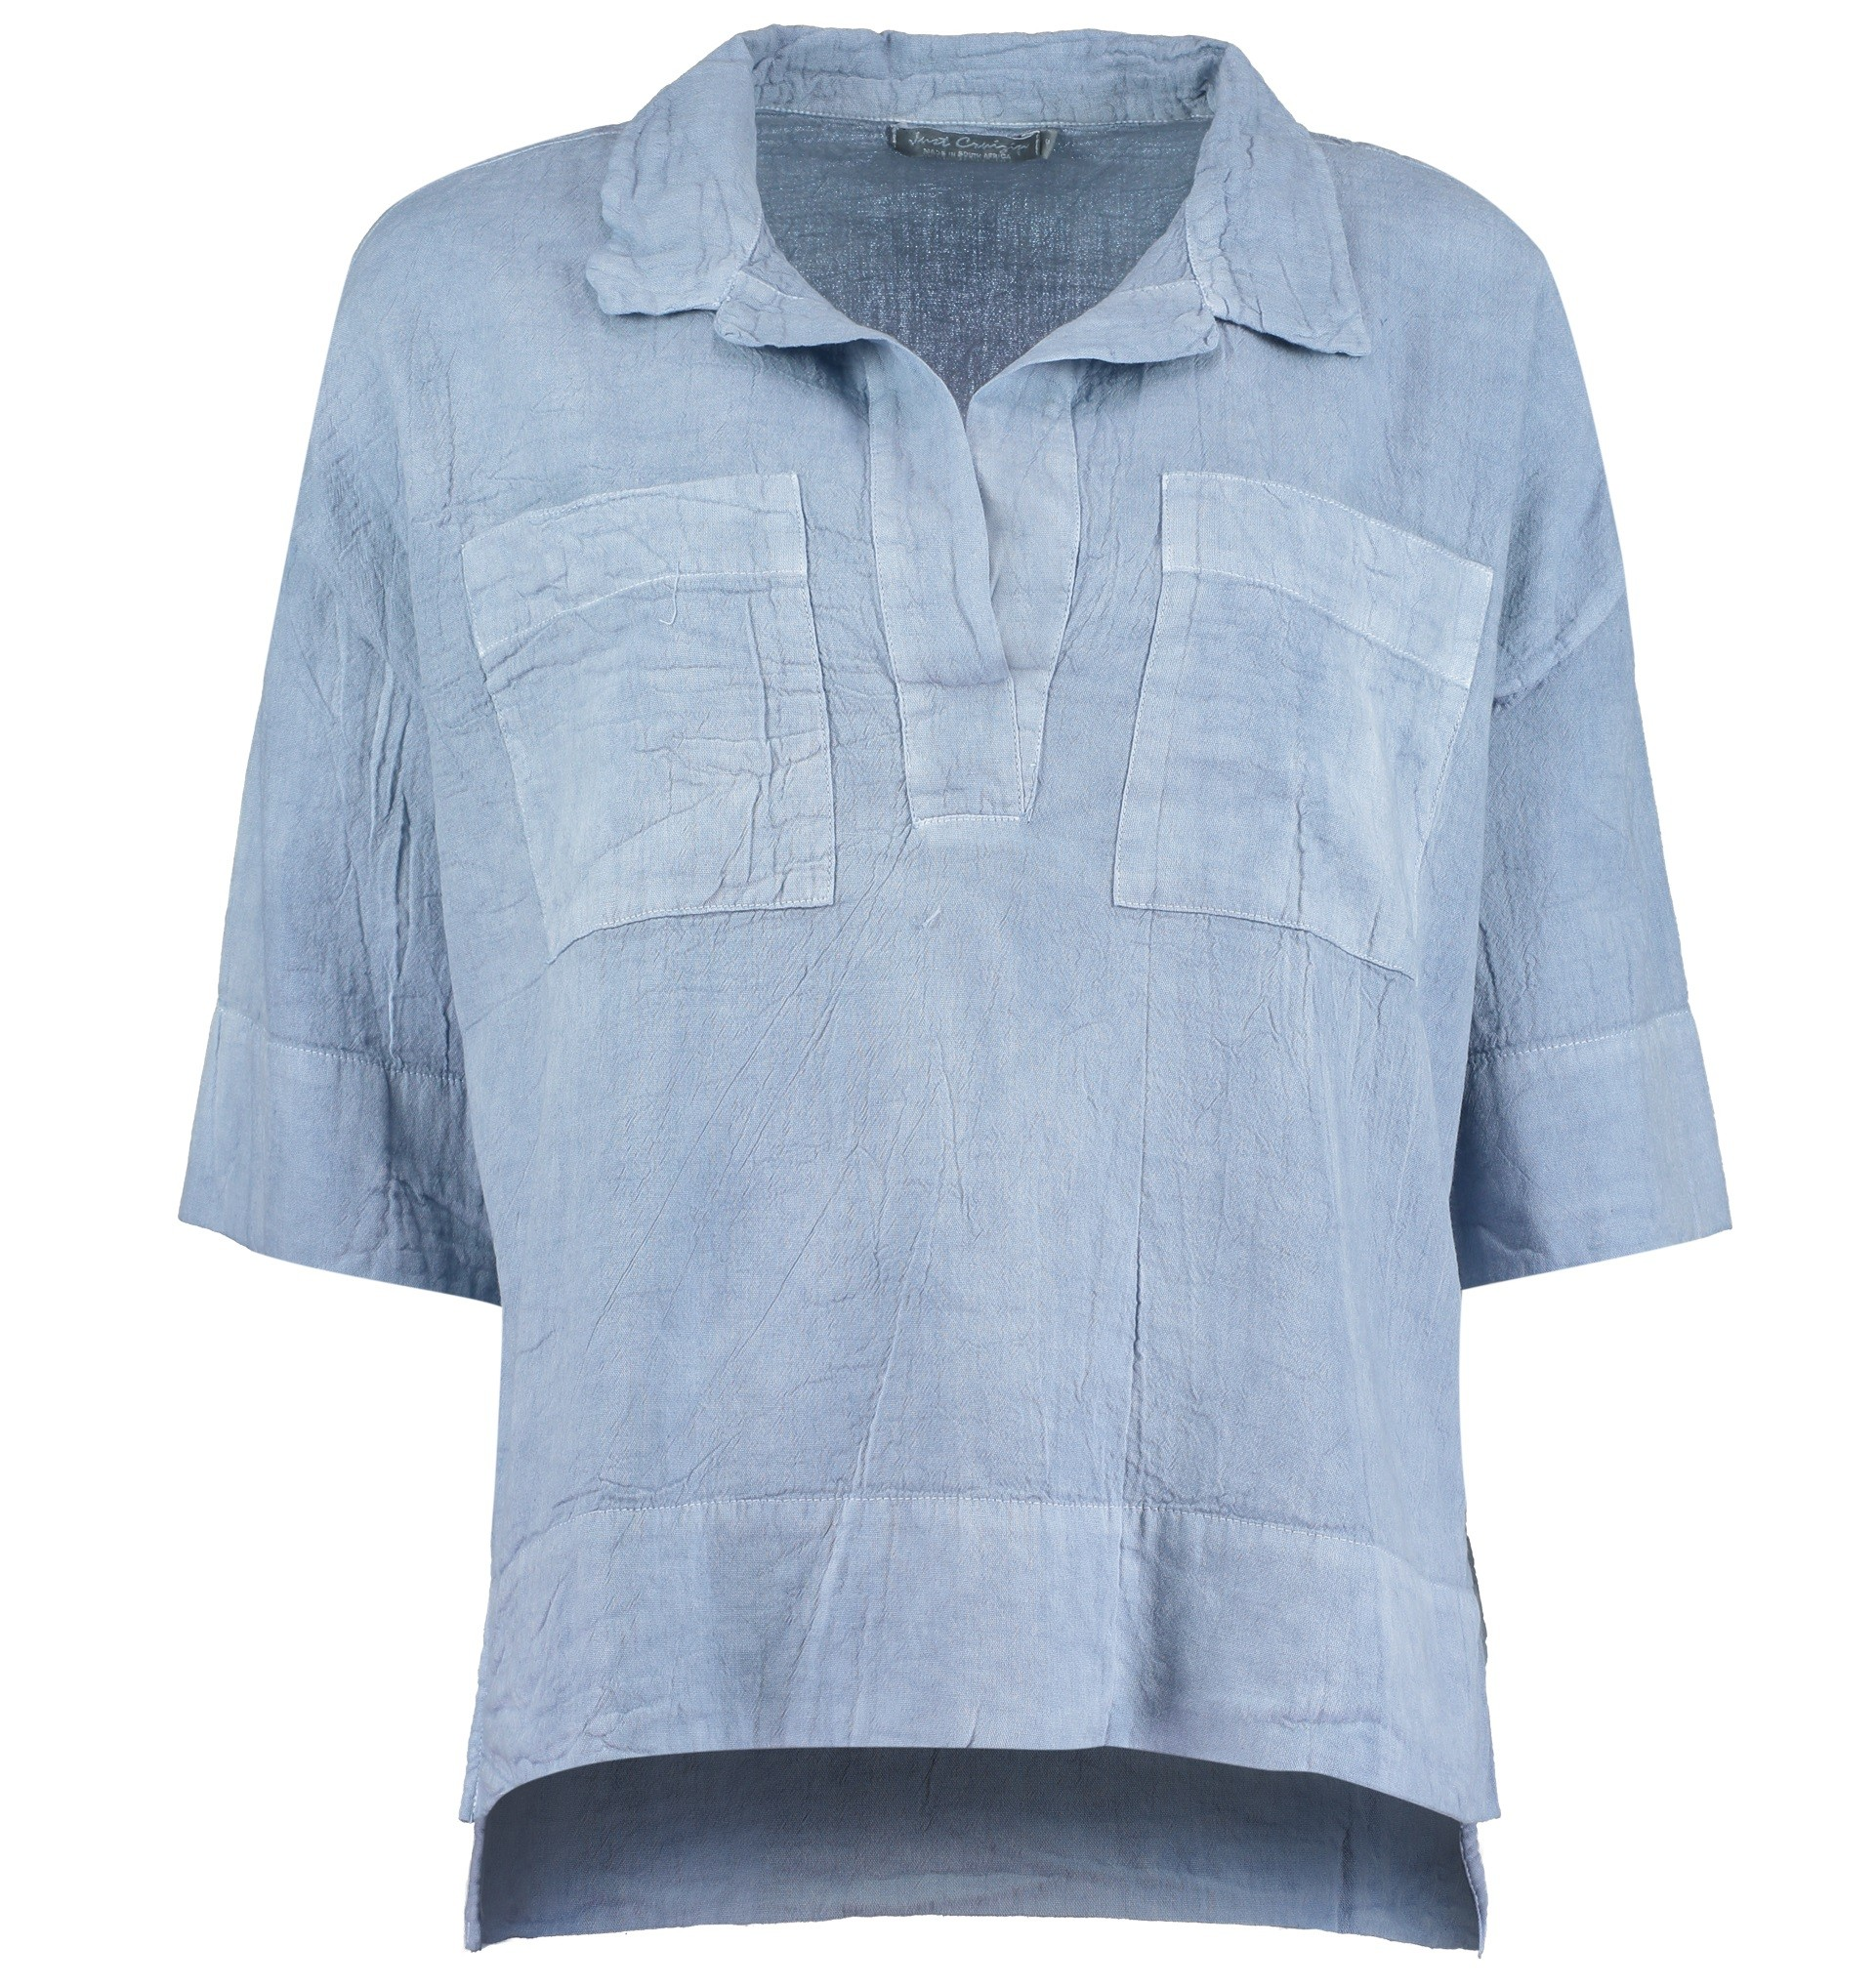 Box Style Shirt Pigment Blue By Just Cruizin Creative